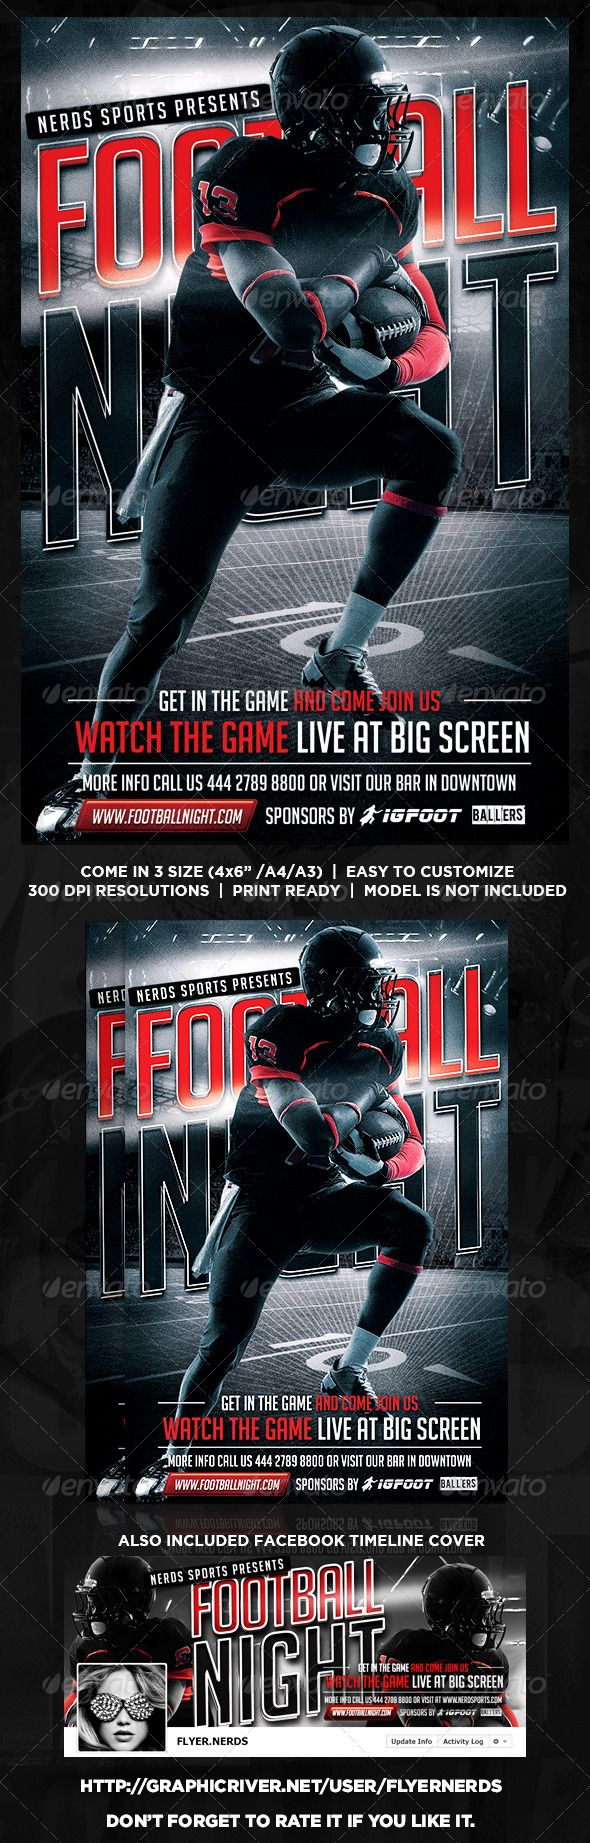 """Football Night Flyer by flyernerds Football Night Flyer Description :Come in 3 Size : 4x6"""" / A4 / A3 with bleedAlso included Facebook Timeline (as shown at preview i"""